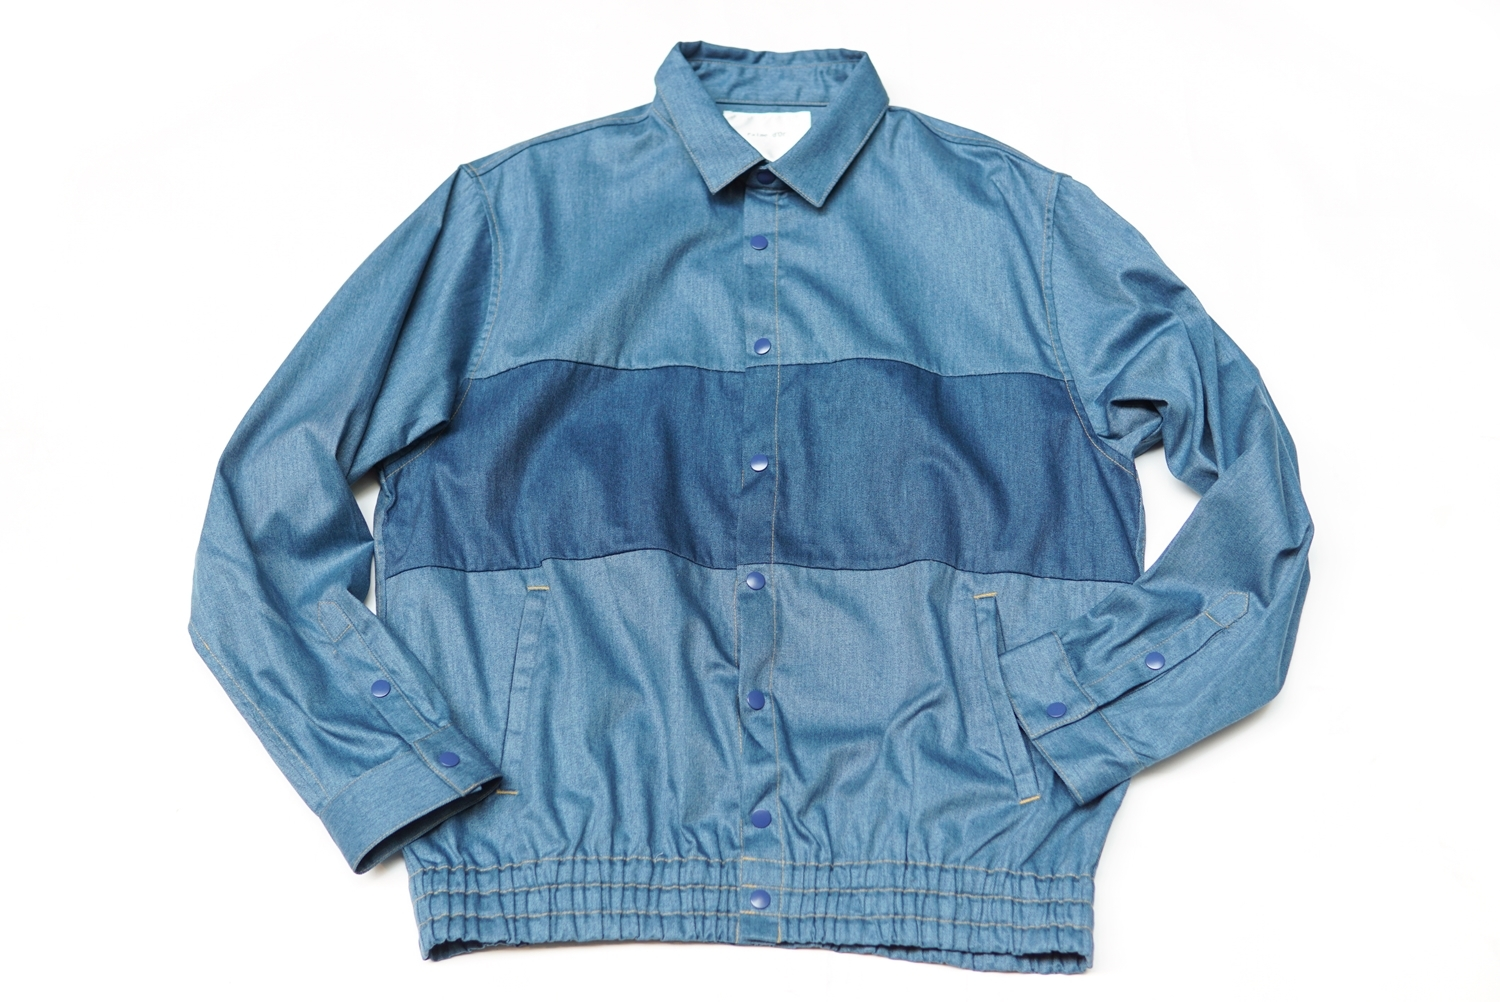 IMITATION DENIM BLOUSON